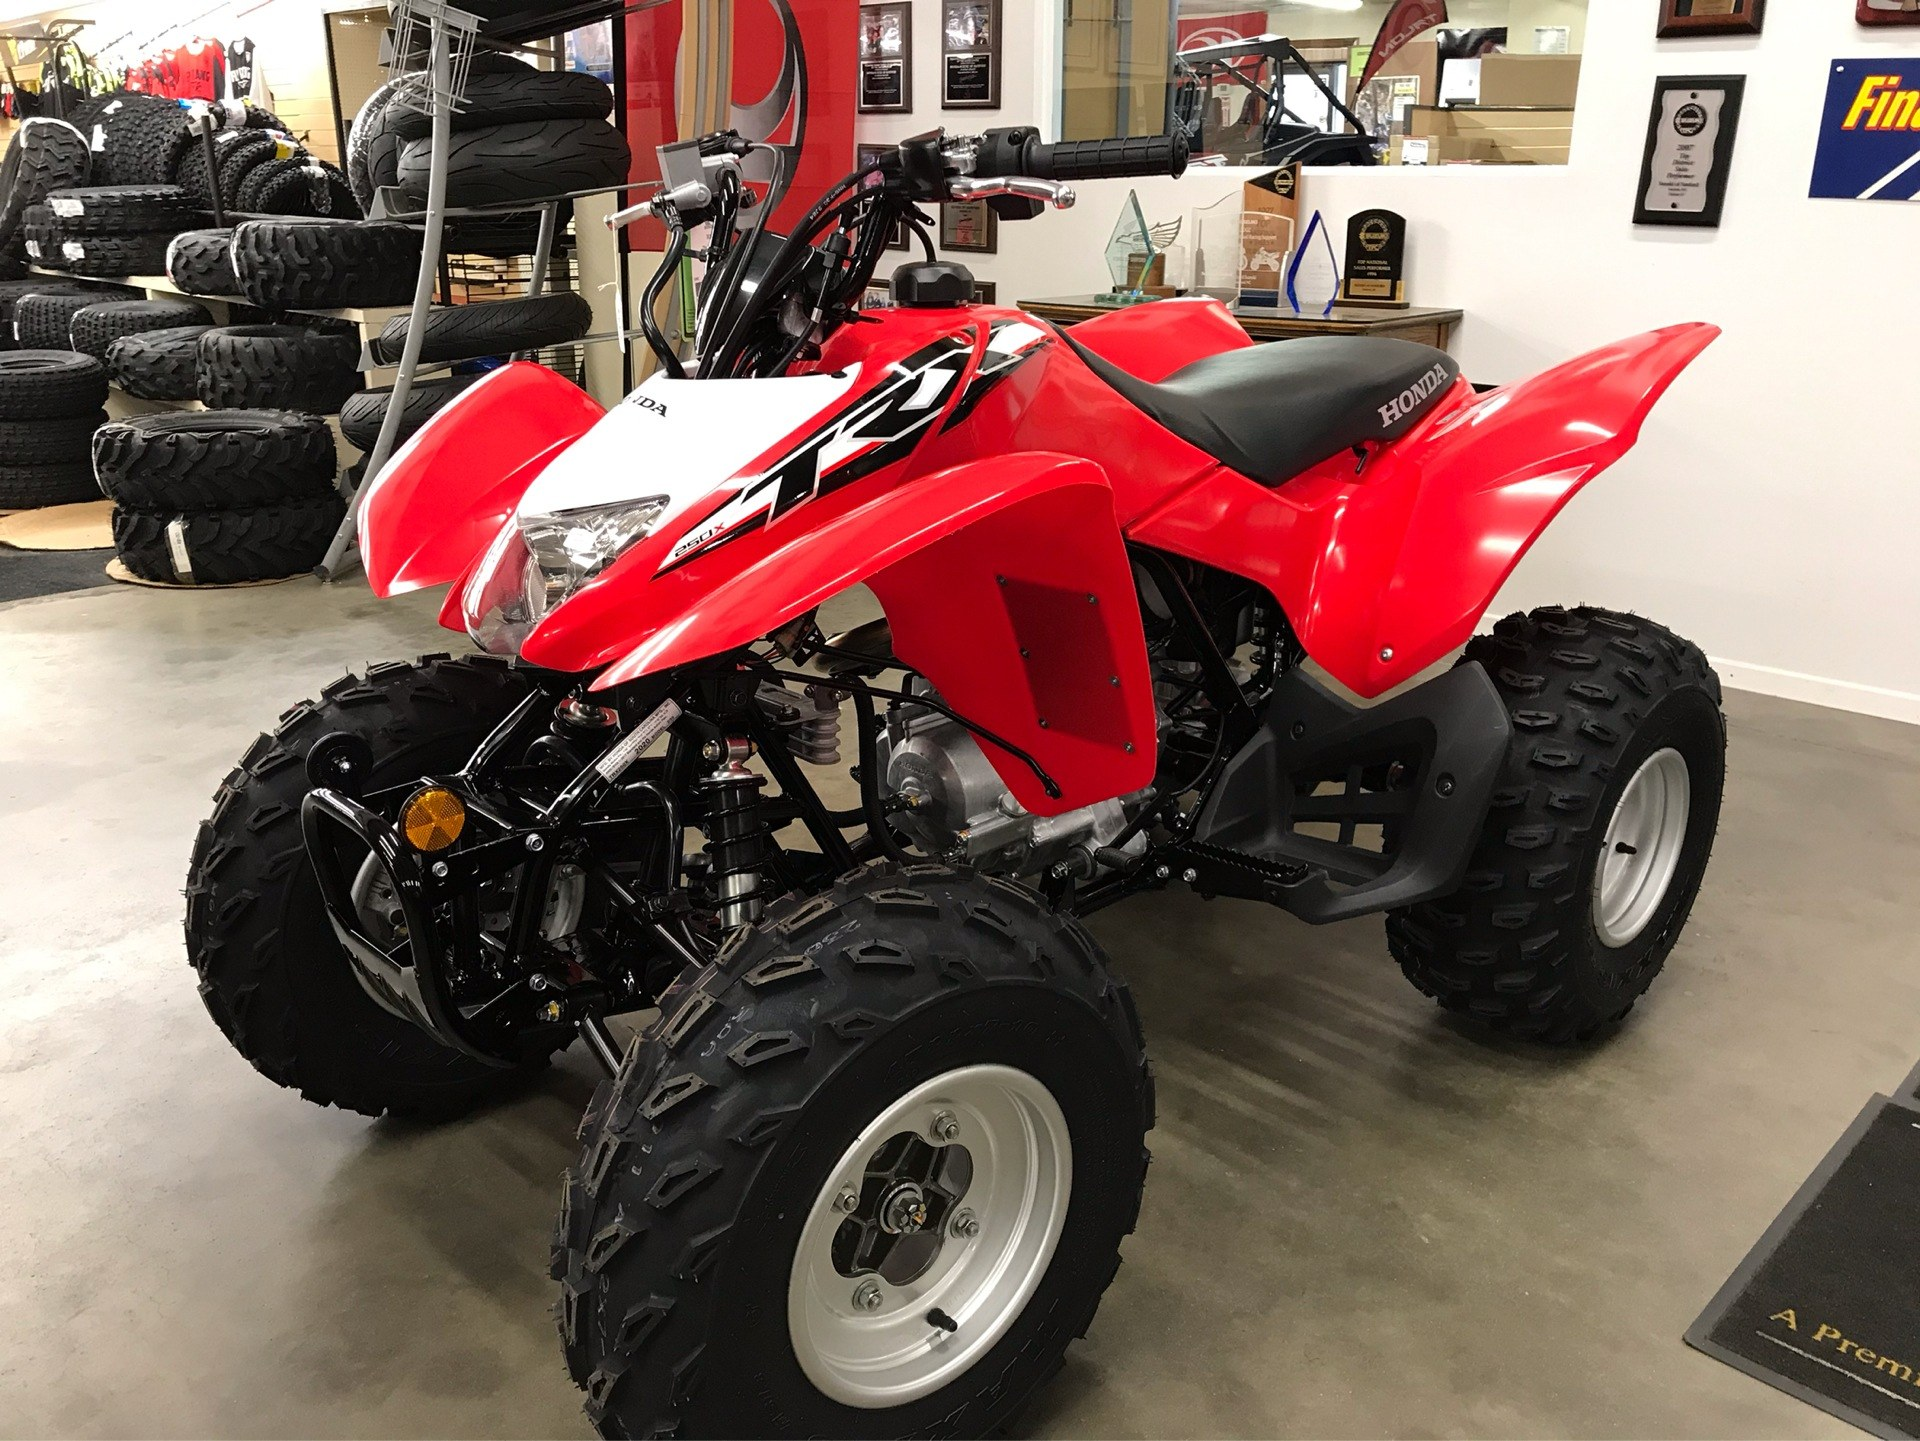 2020 Honda TRX250X in Sanford, North Carolina - Photo 9